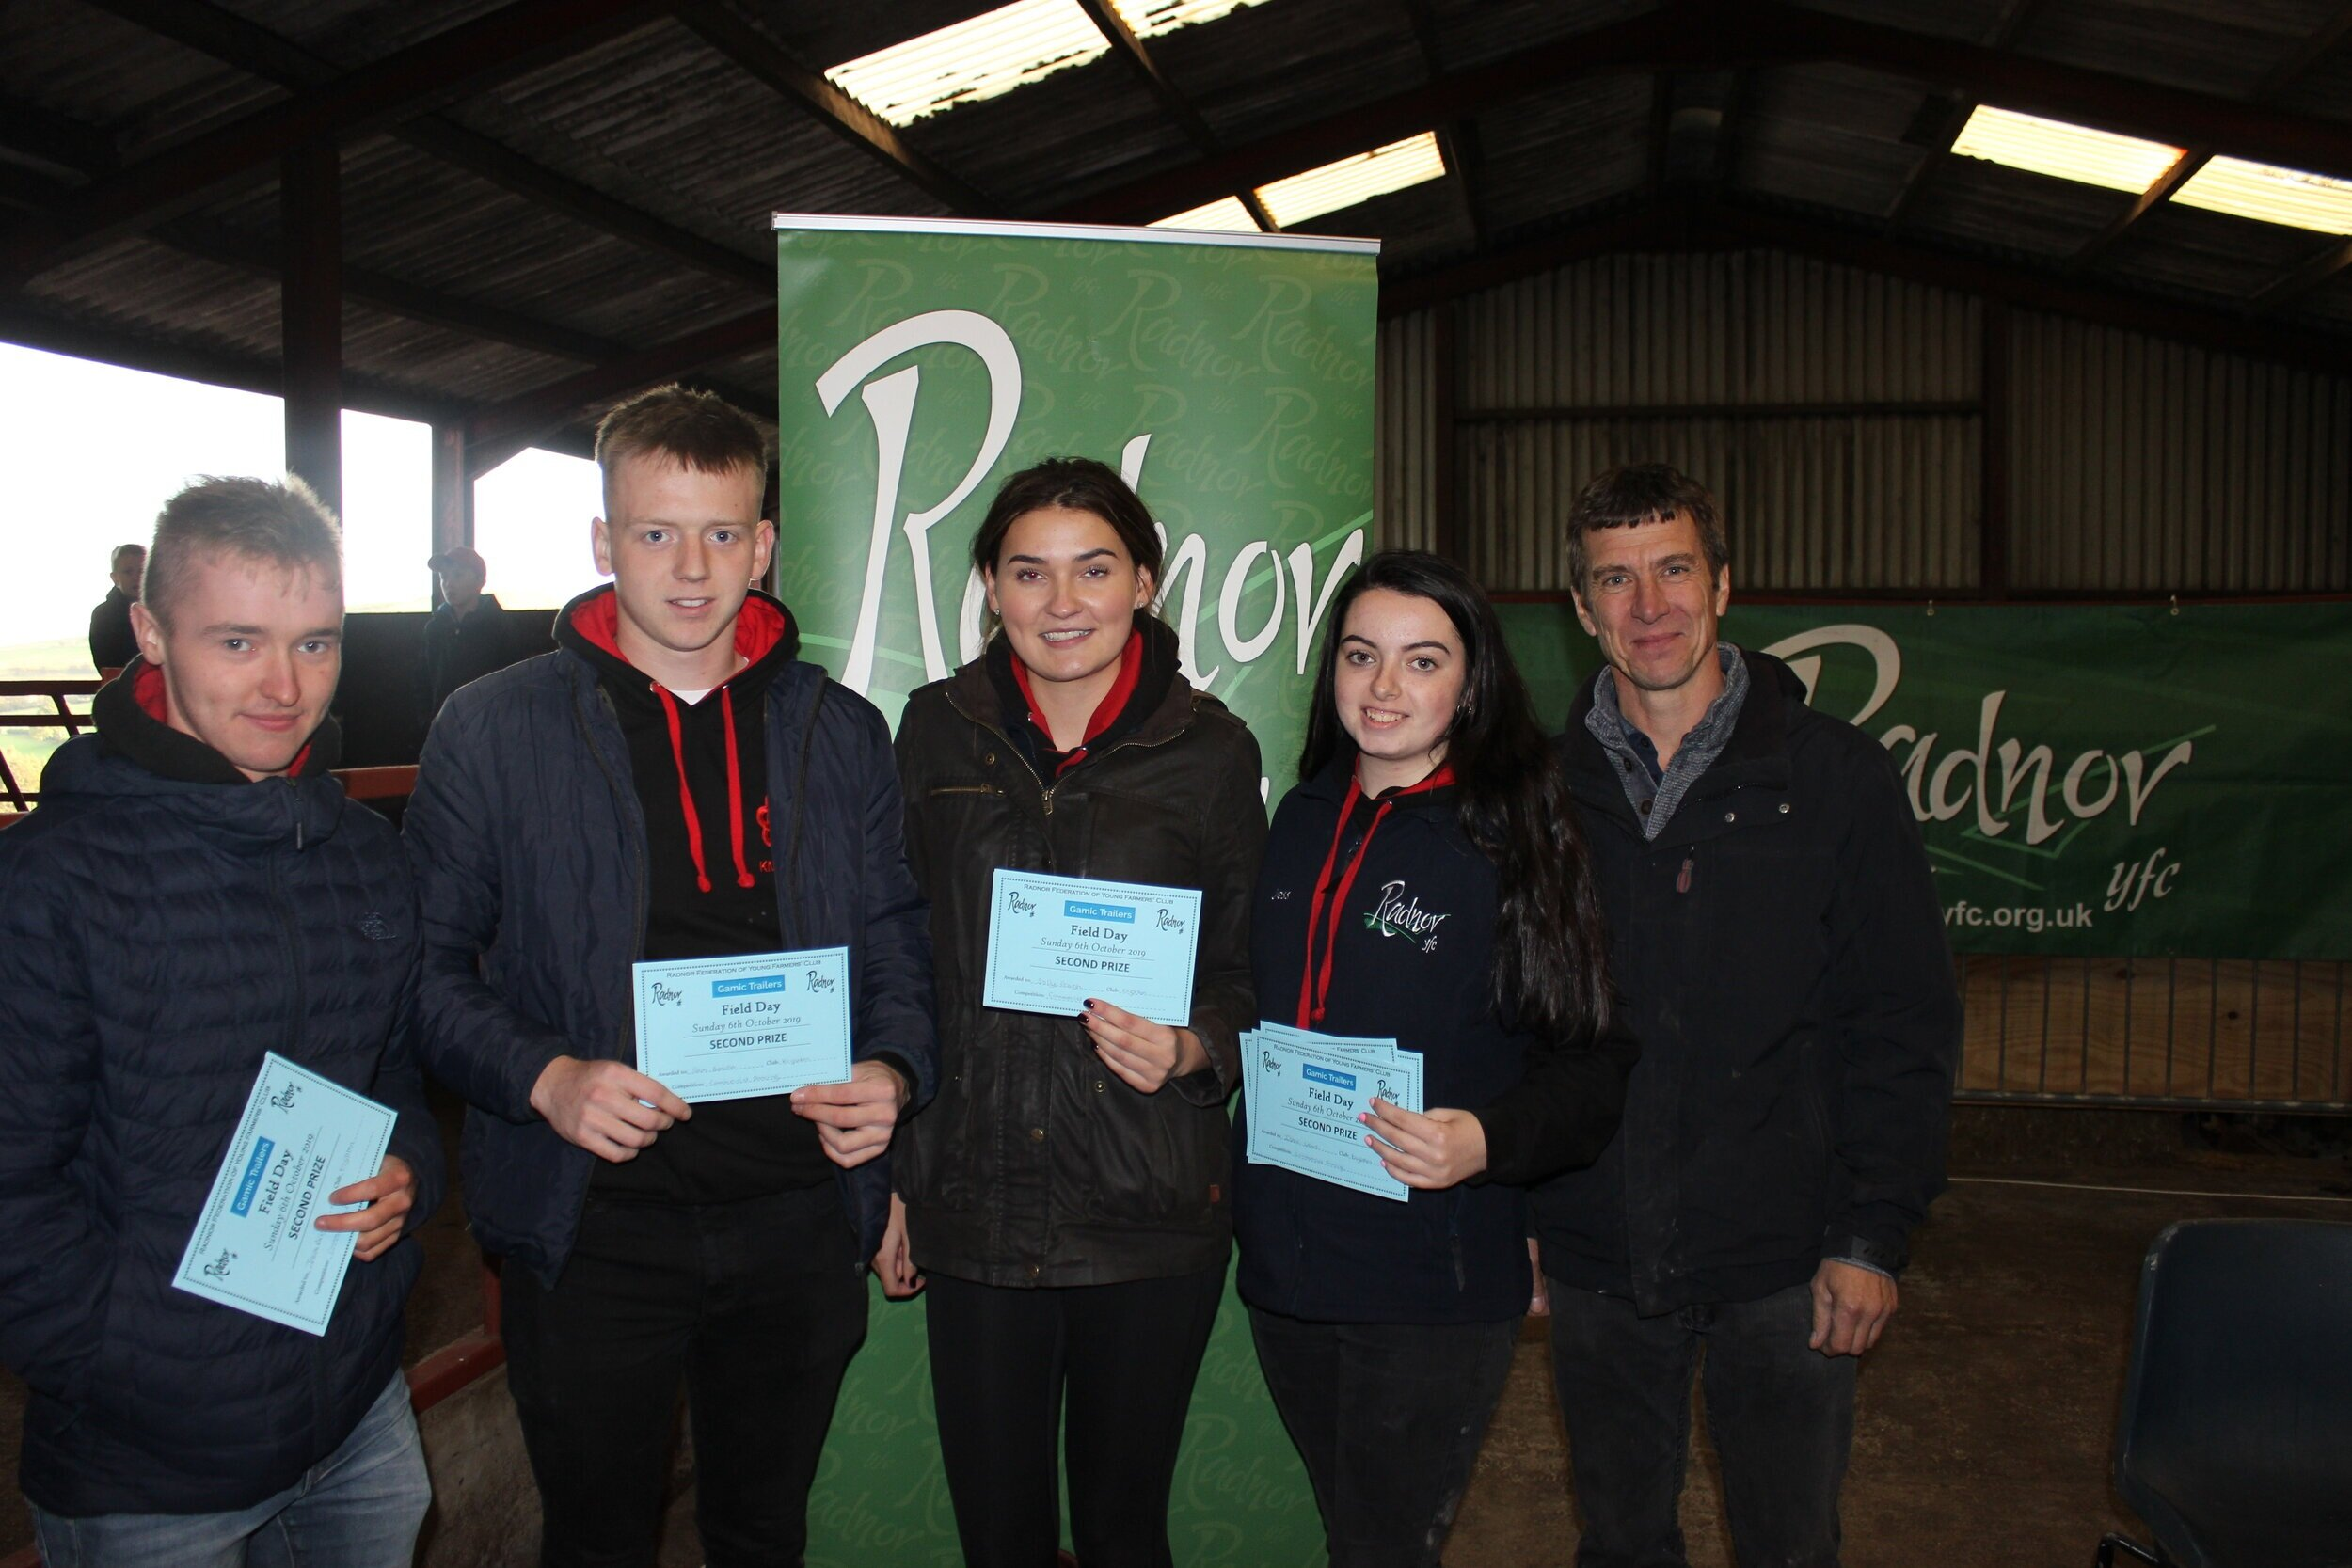 Jack Bright, Sam Beavan, Sally Gough & Jess Morgan, Knighton YFC - joint 2nd place in the Commercial Dance competition with Mark Watson